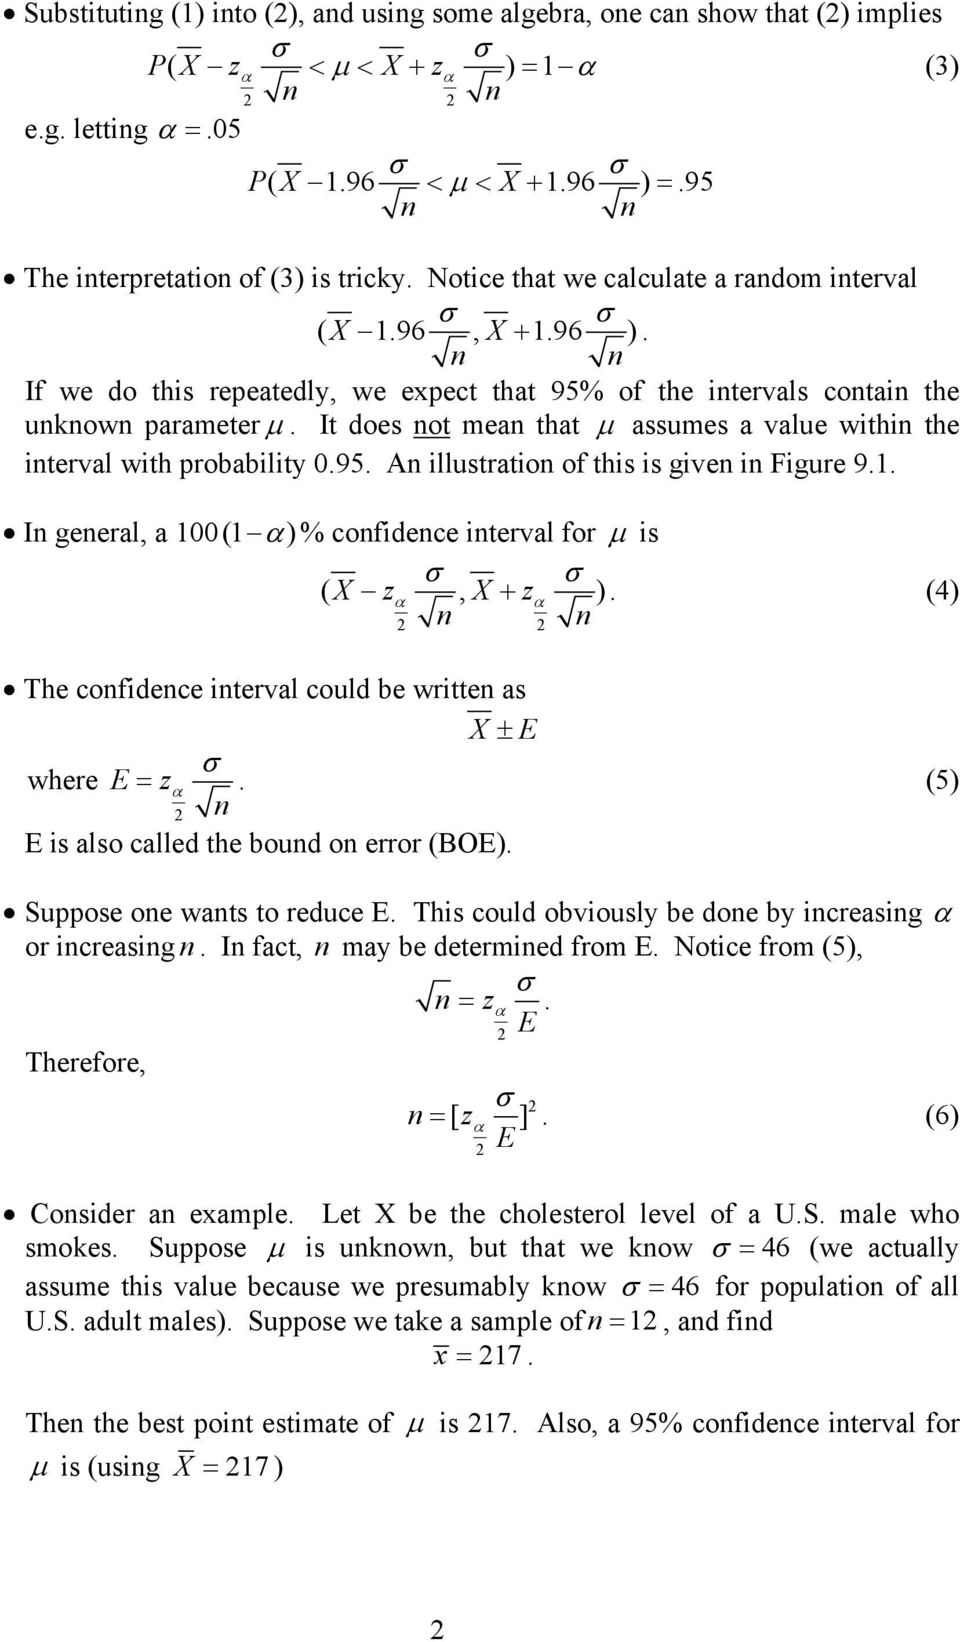 Topic 5: Confidence Intervals (Chapter 9) - PDF